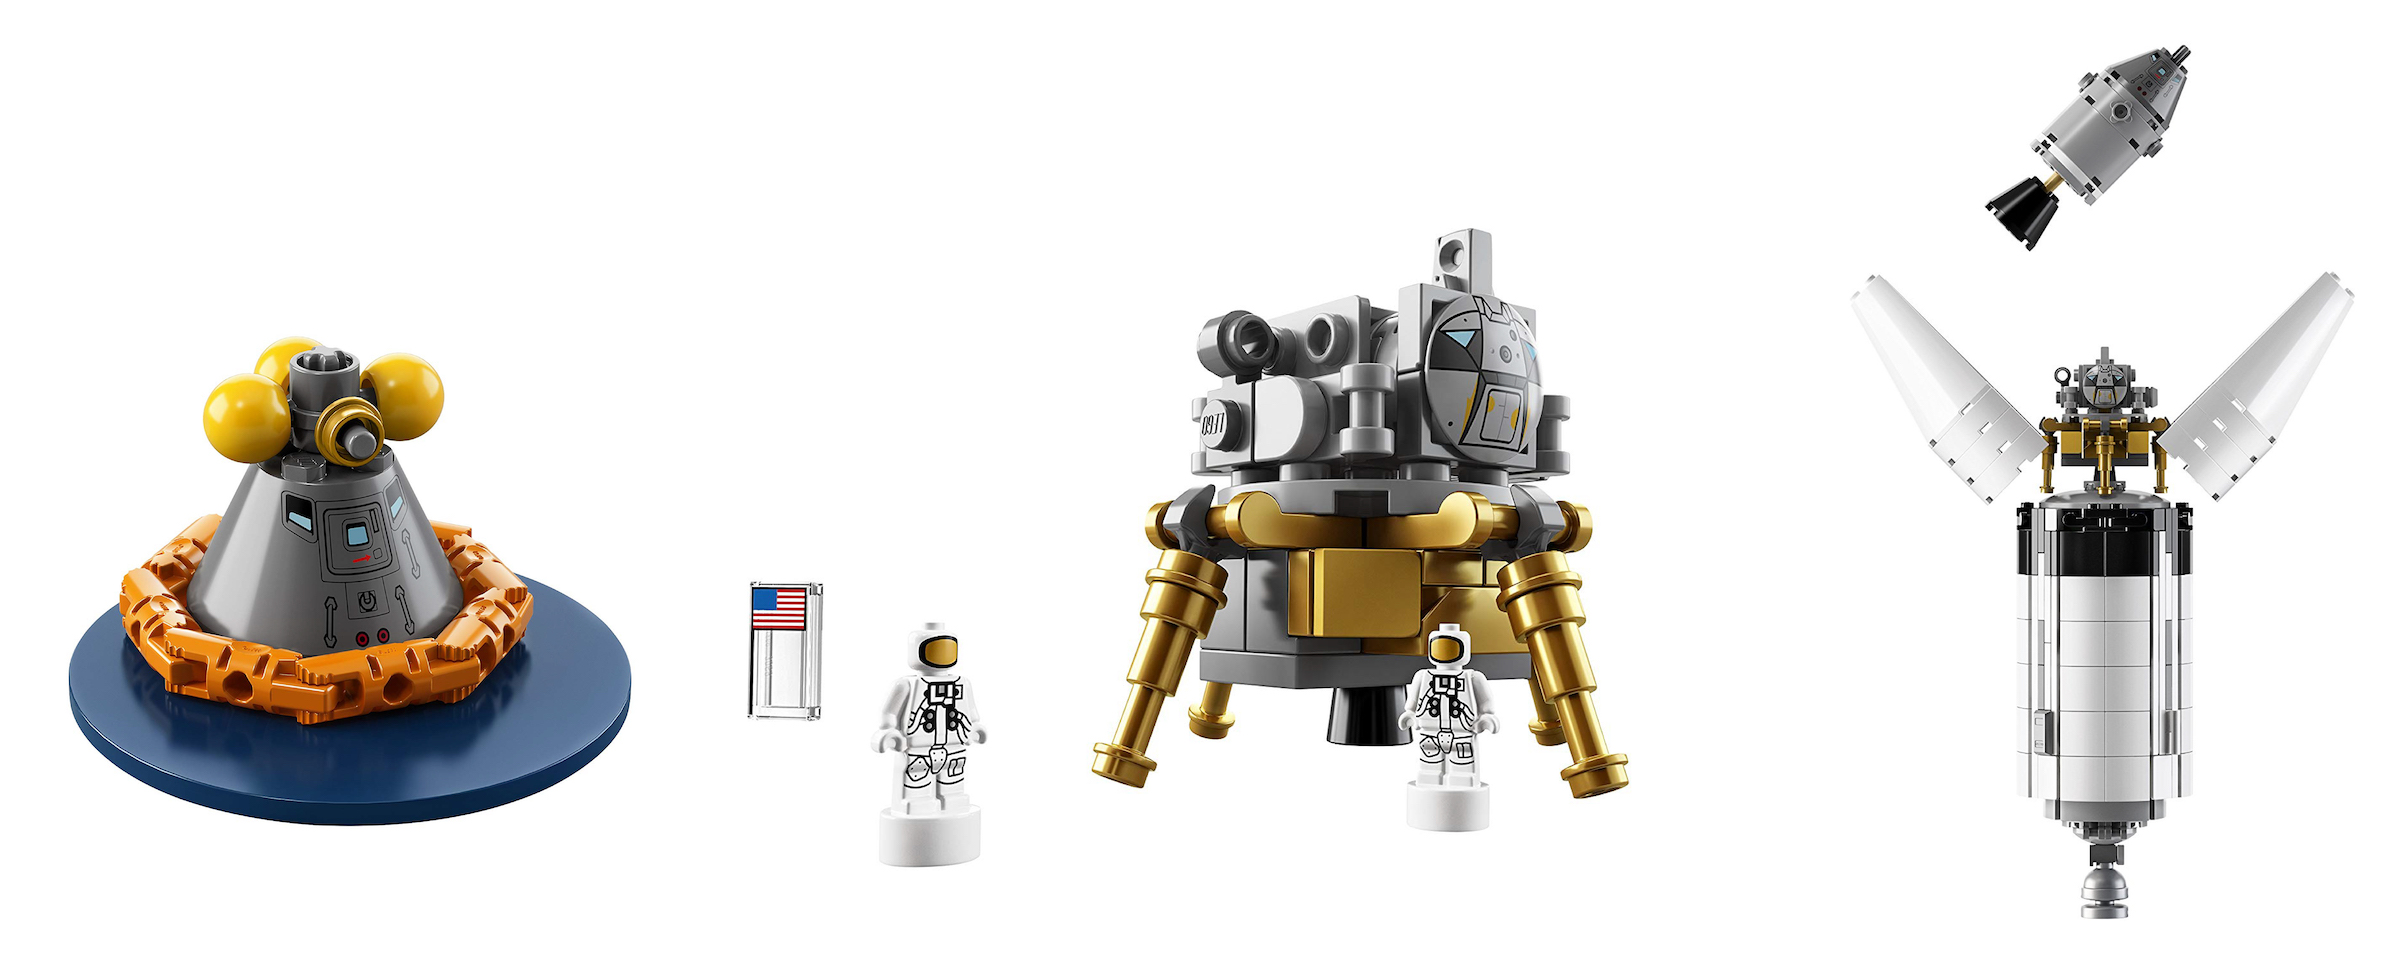 NASA Apollo Saturn V Rocket Lego Kit 4